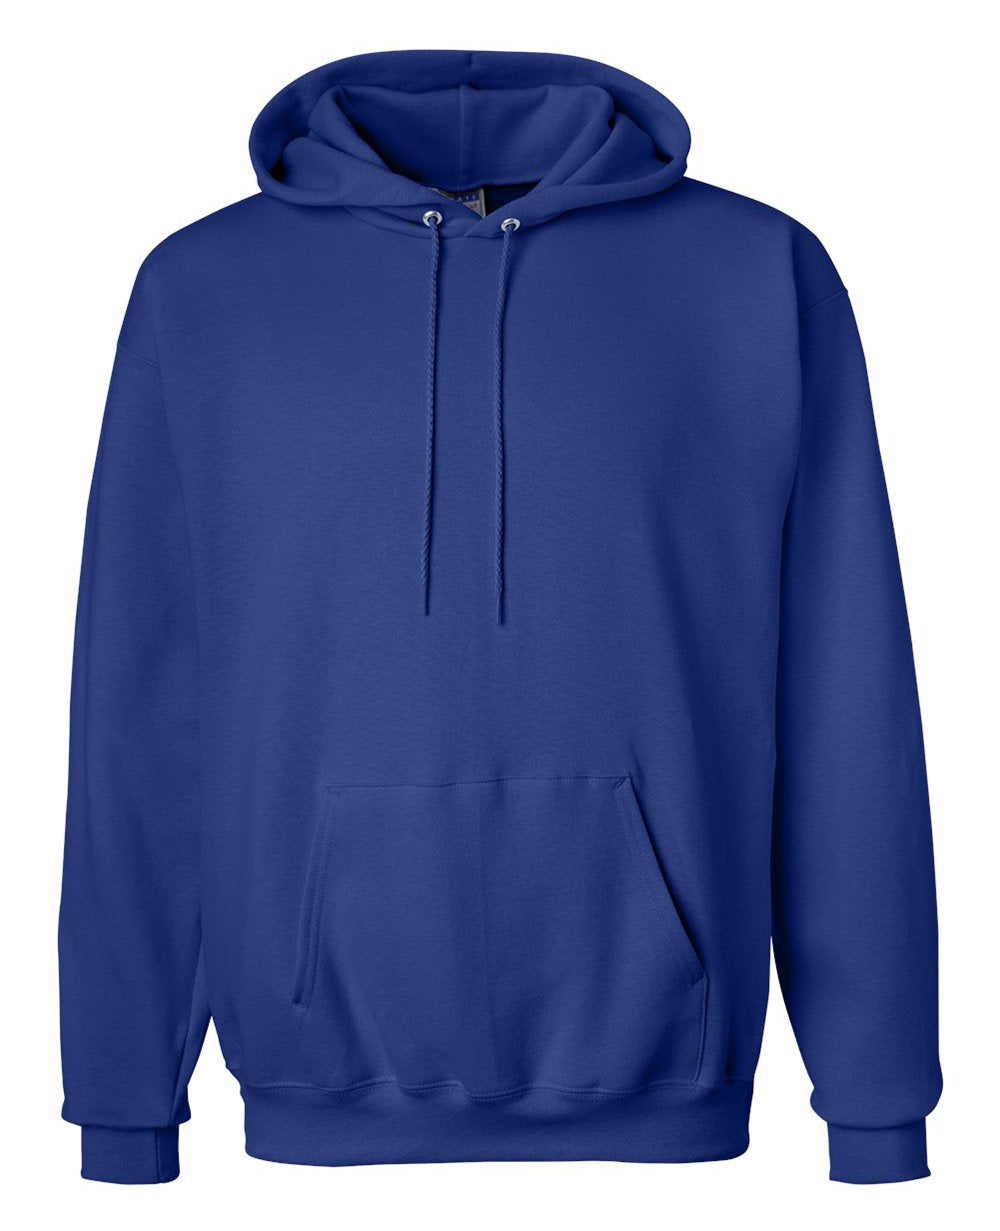 Pullover Hoodies in Deep Royal